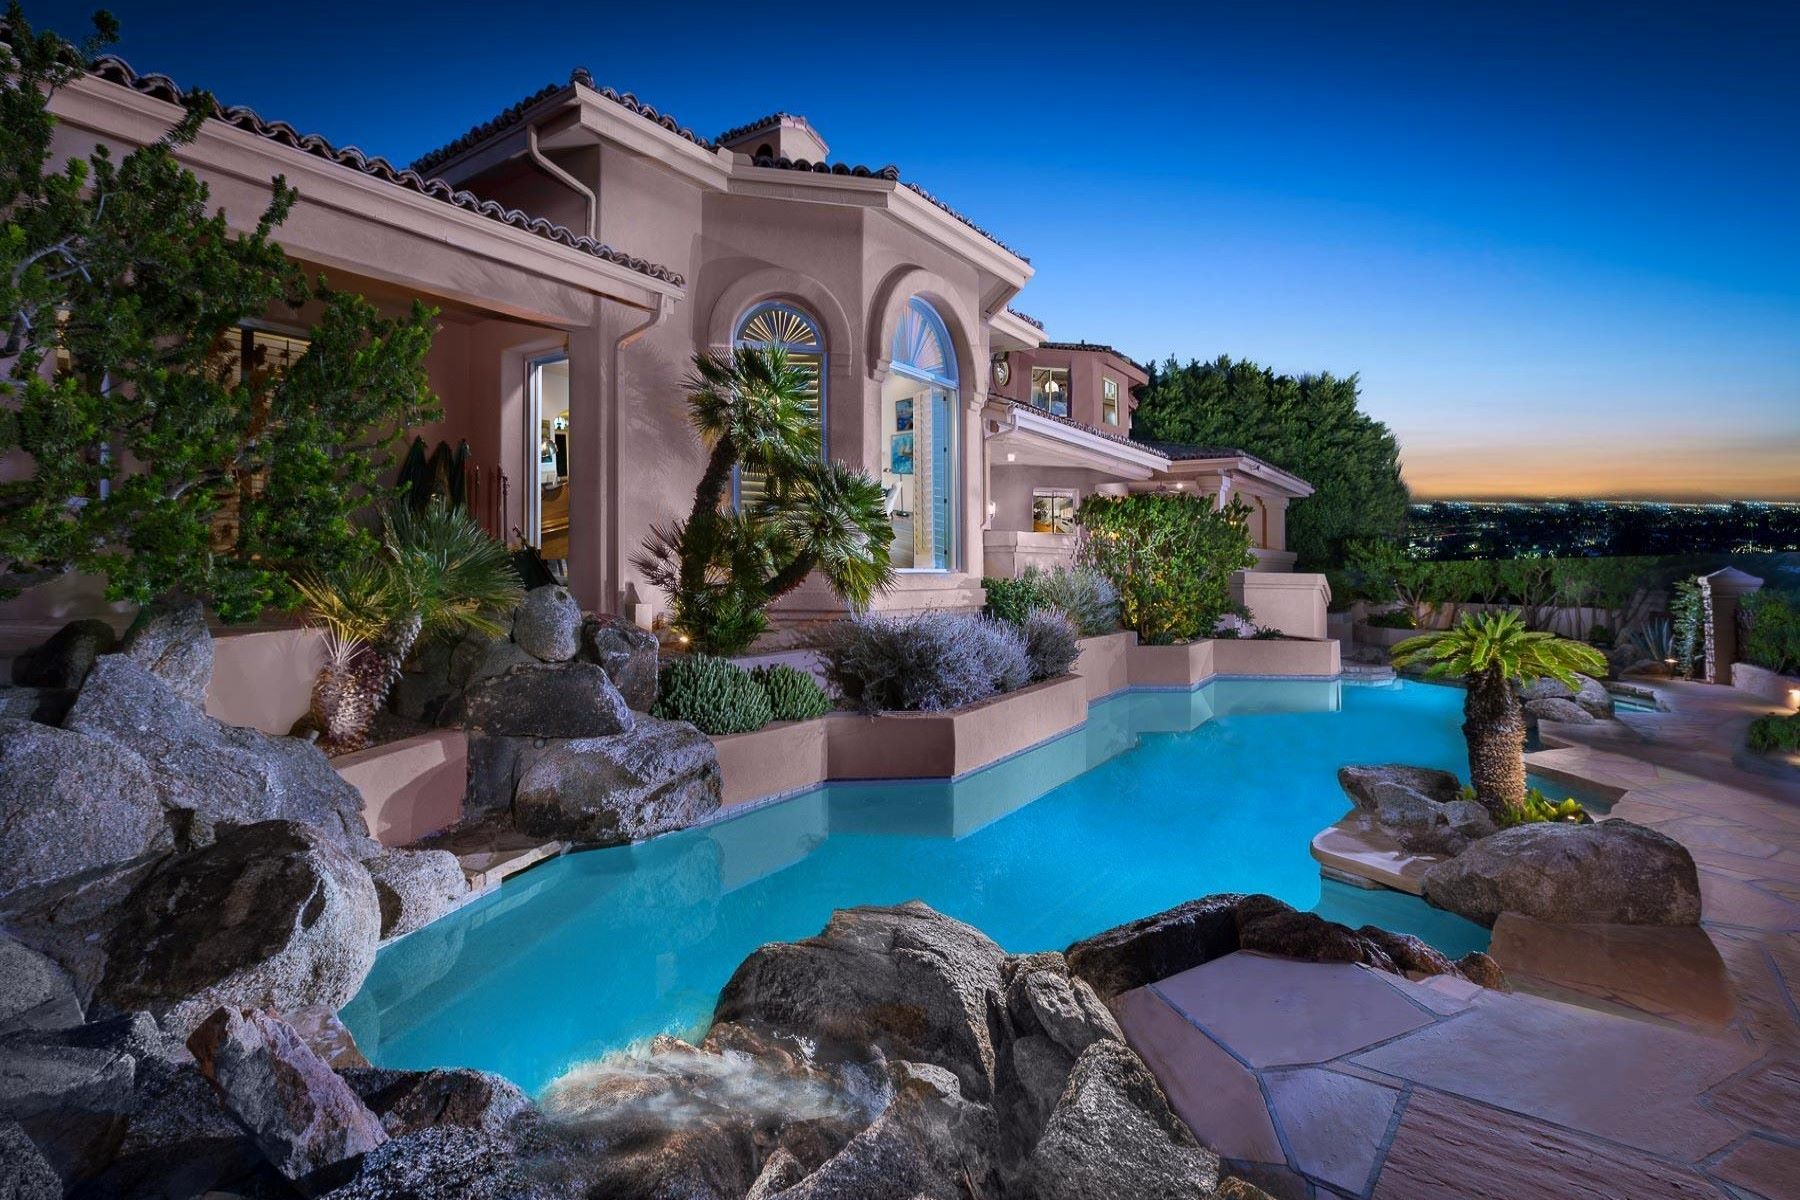 Maison unifamiliale pour l Vente à Magnificent Gem in Paradise Valley 6321 E Vista Dr Paradise Valley, Arizona, 85253 États-Unis